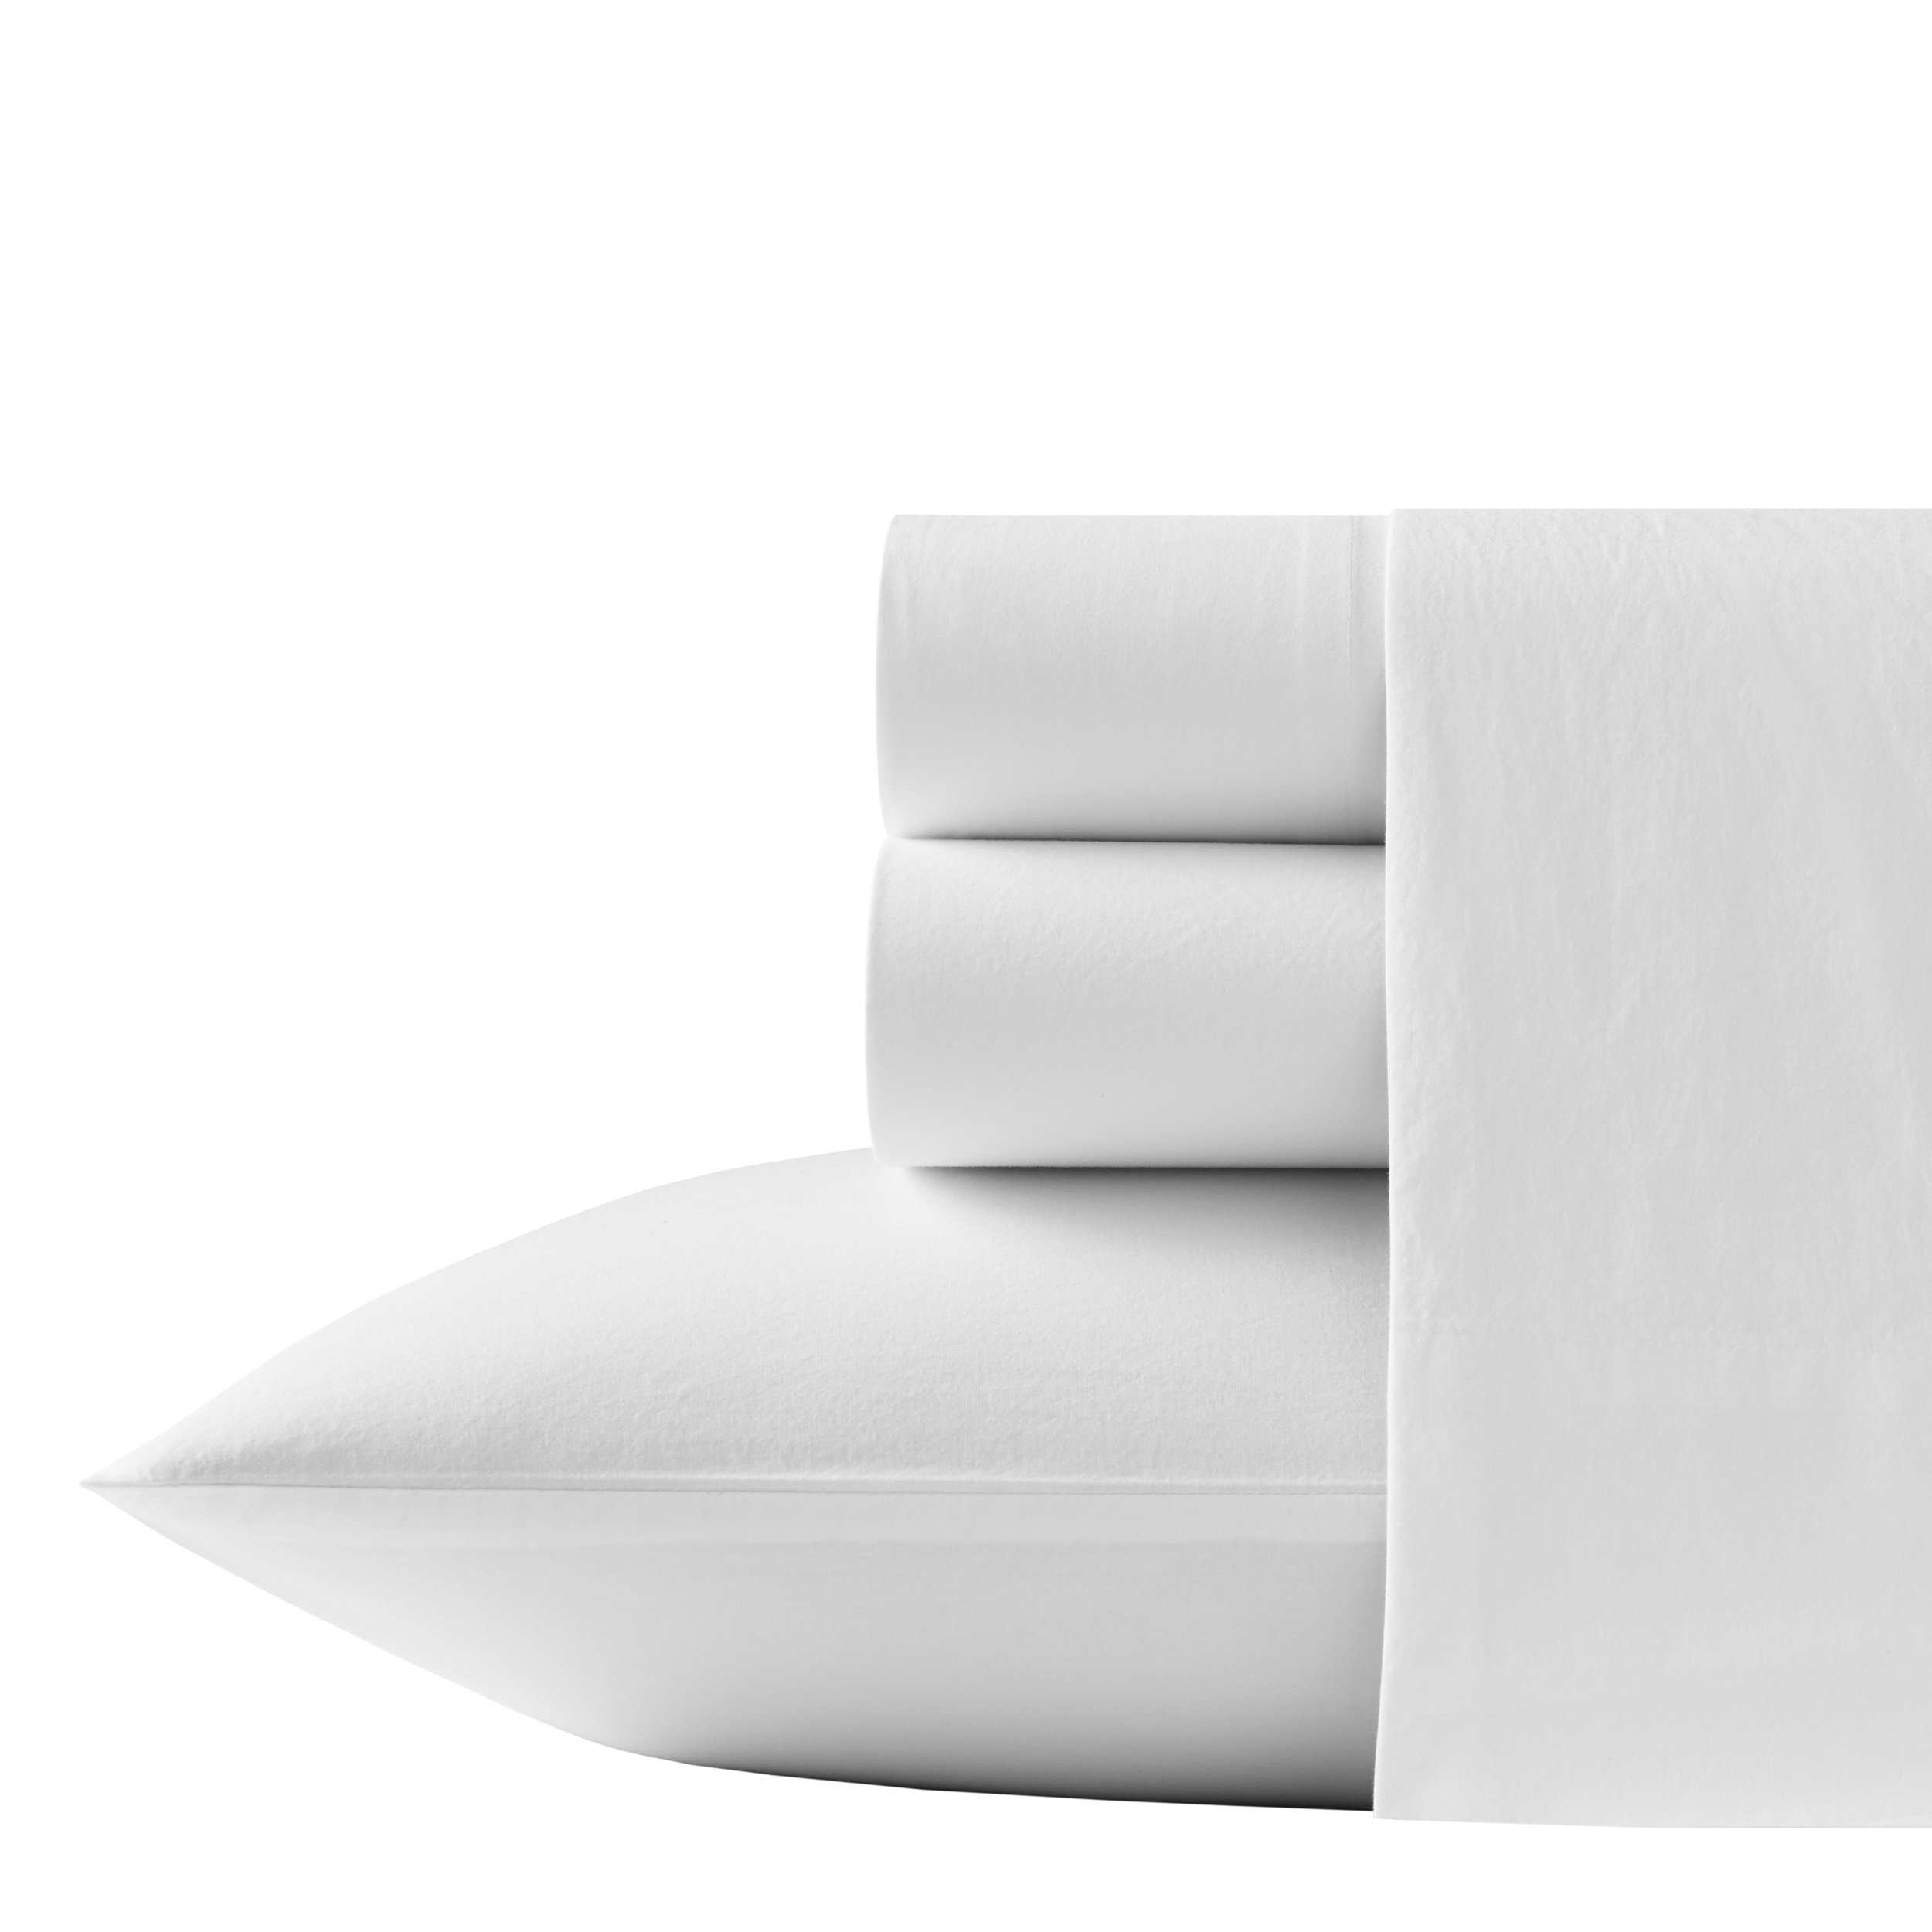 Tommy Bahama Relaxed State Sheet Set, White, King